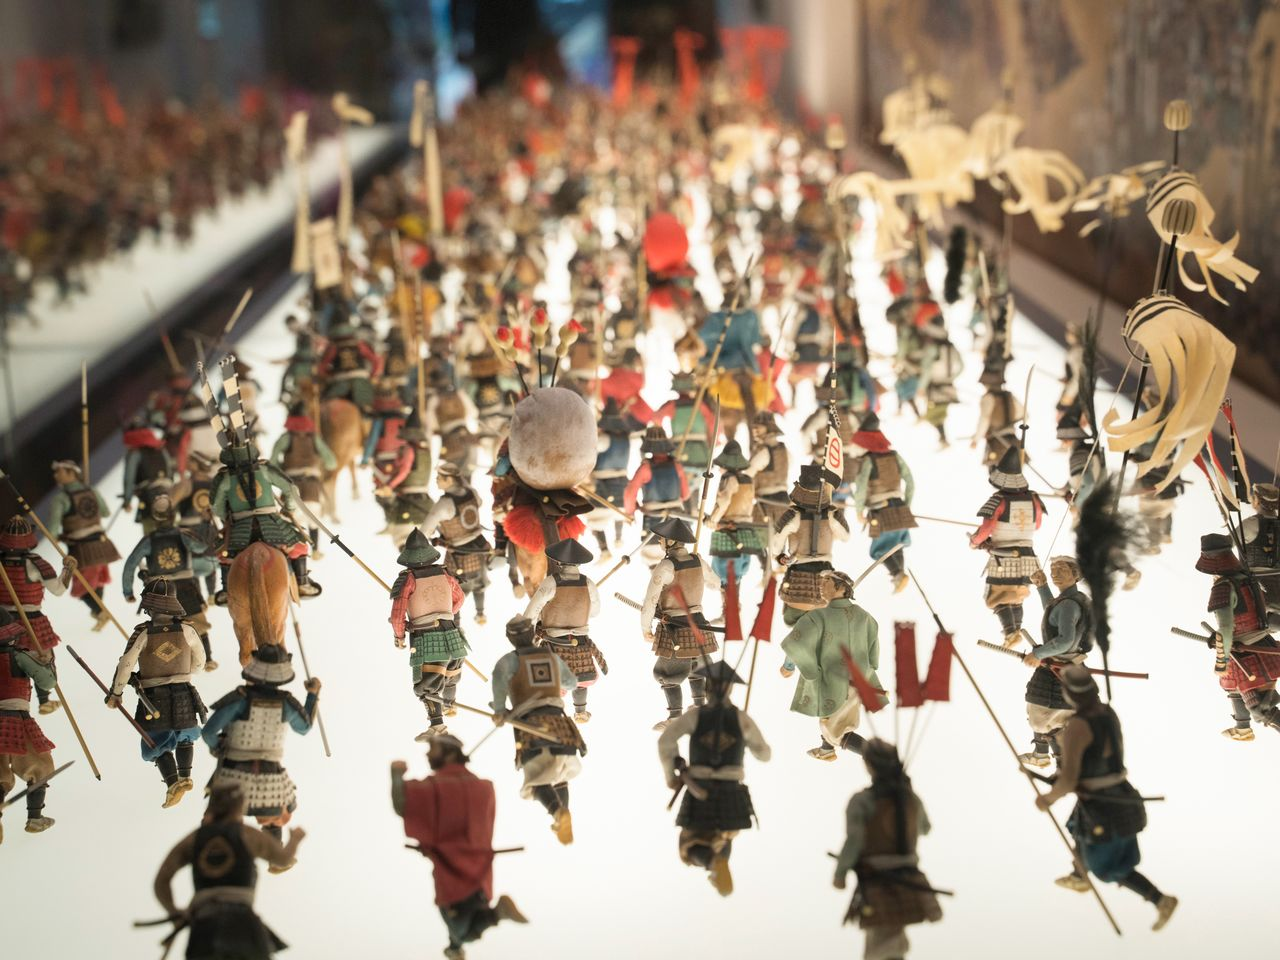 A diorama with miniature figures depicting a battle at the second Siege of Osaka.